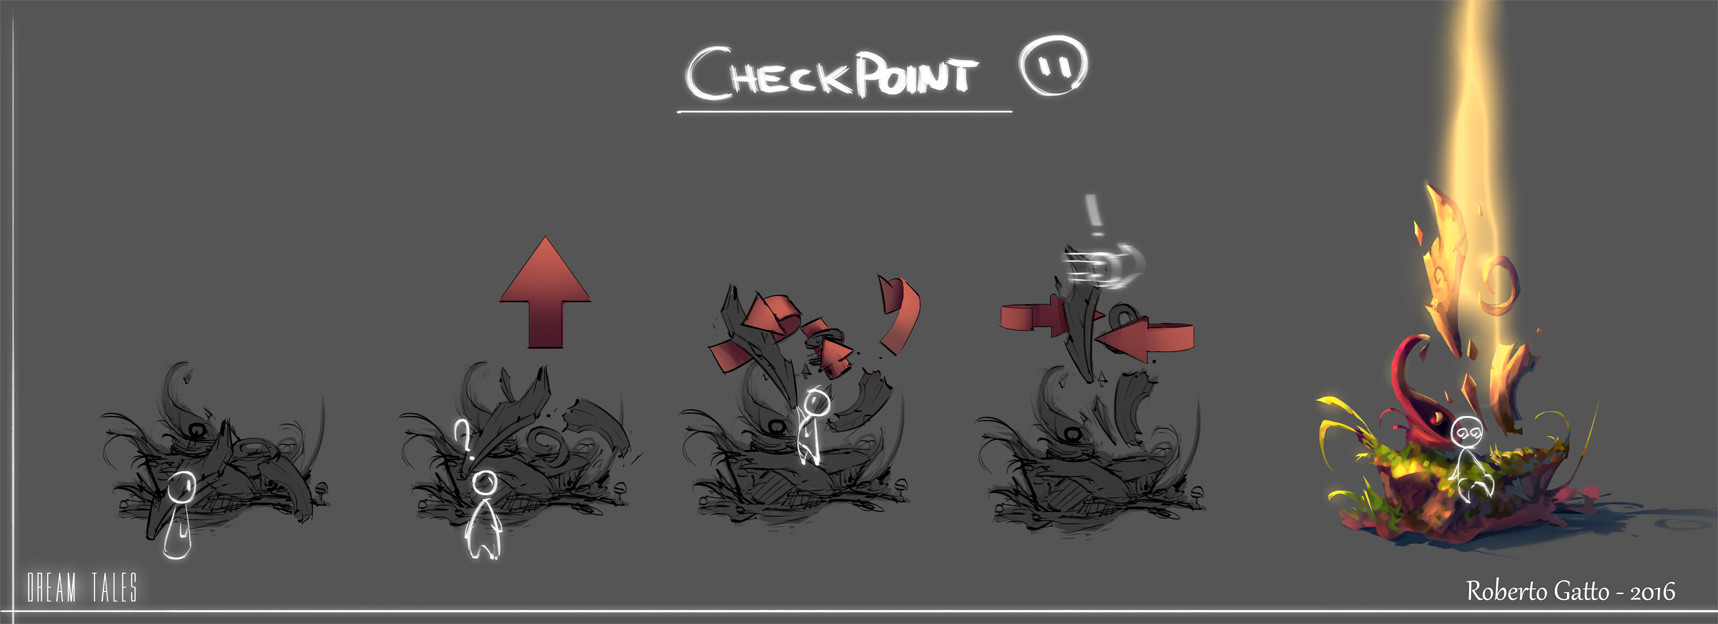 Dream Tales - Checkpoint Concept